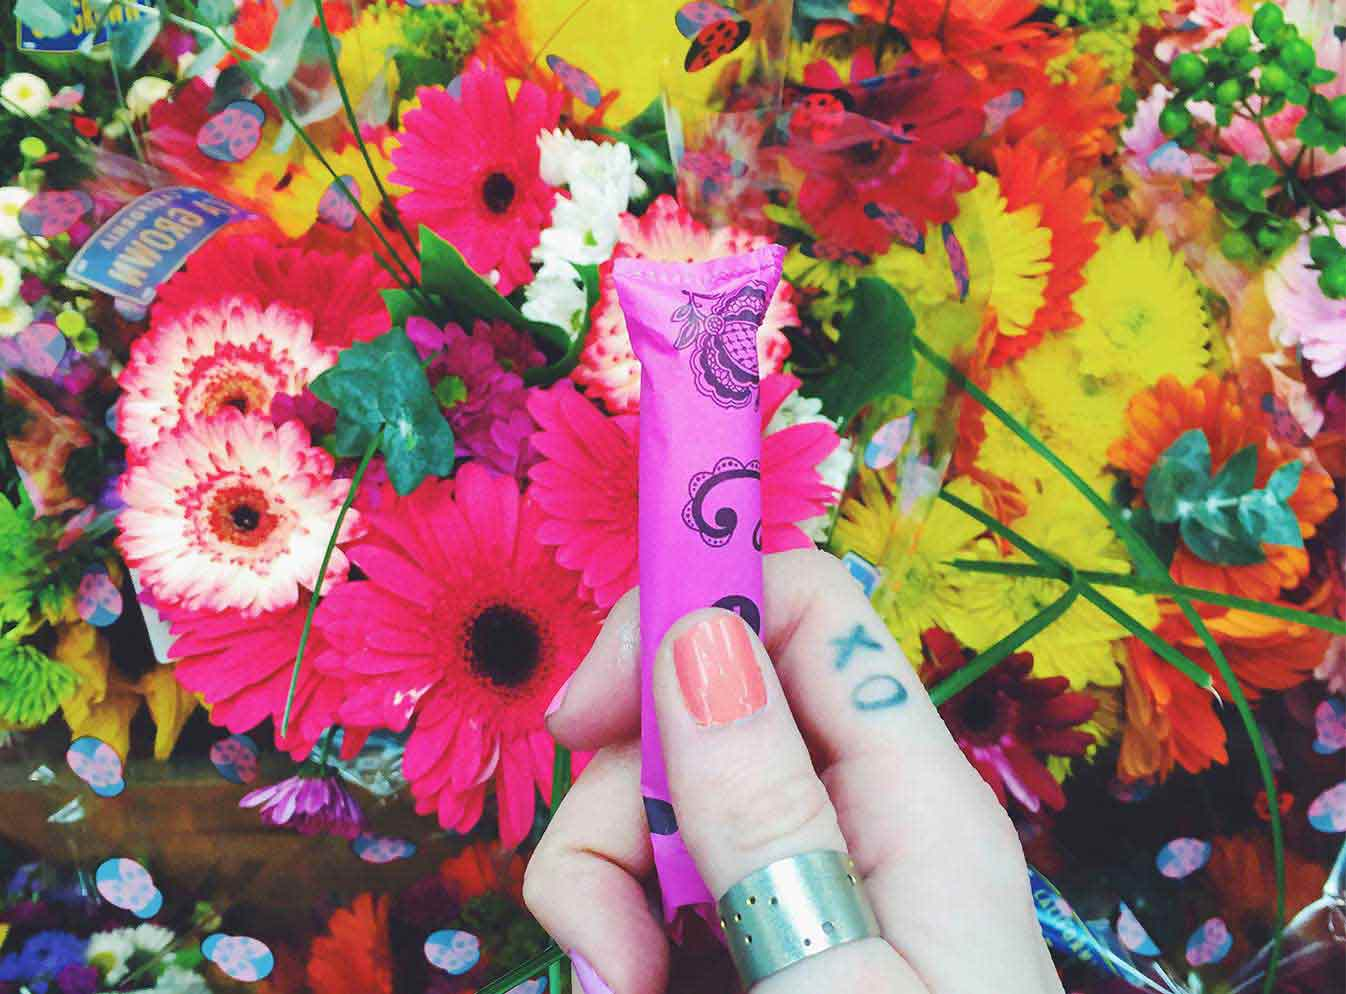 Girls hand holding tampon over bed of flowers